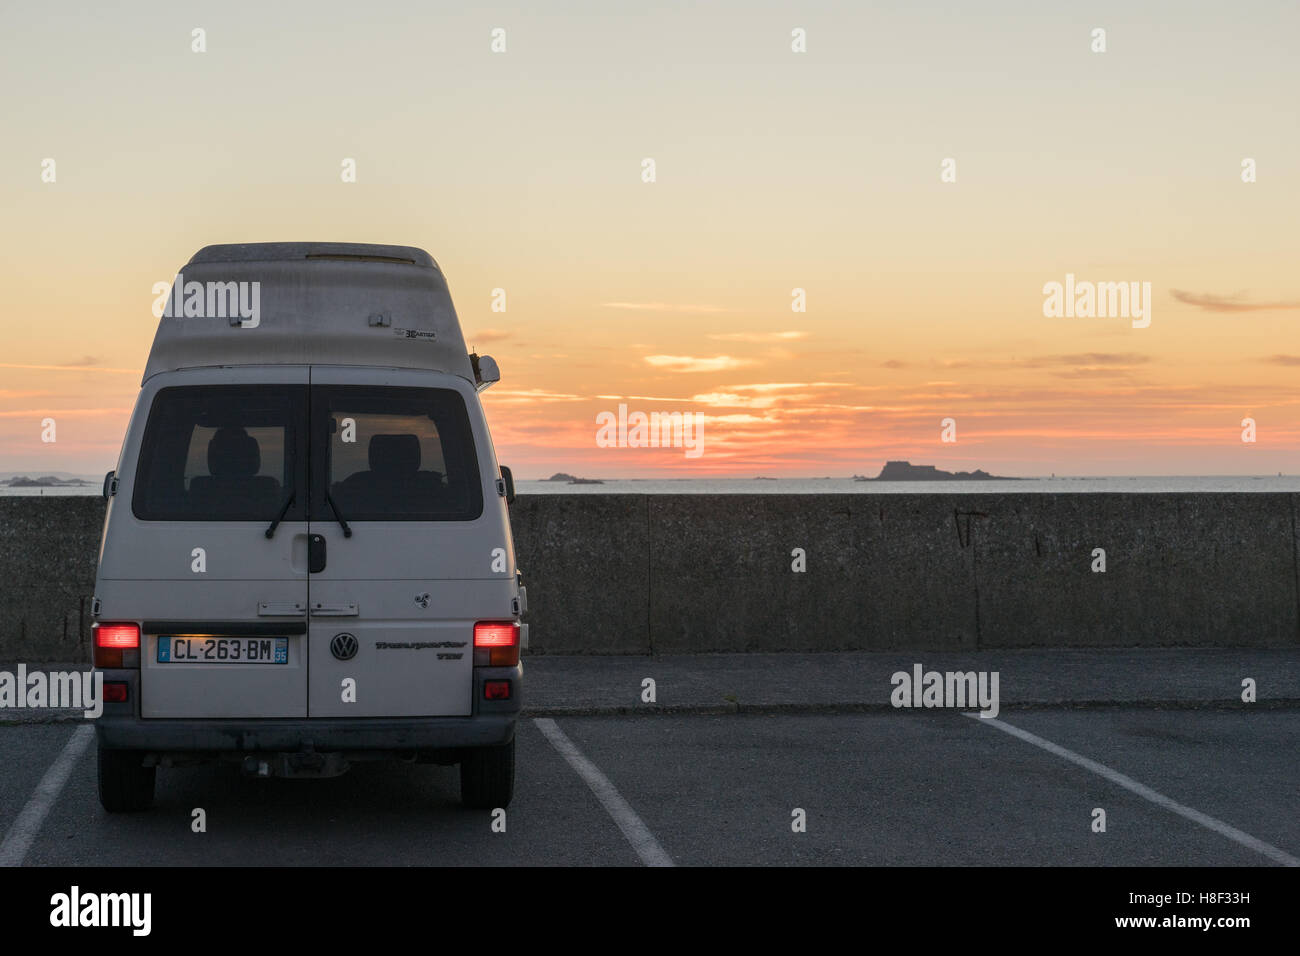 vintage camper van stock photos vintage camper van stock images alamy. Black Bedroom Furniture Sets. Home Design Ideas